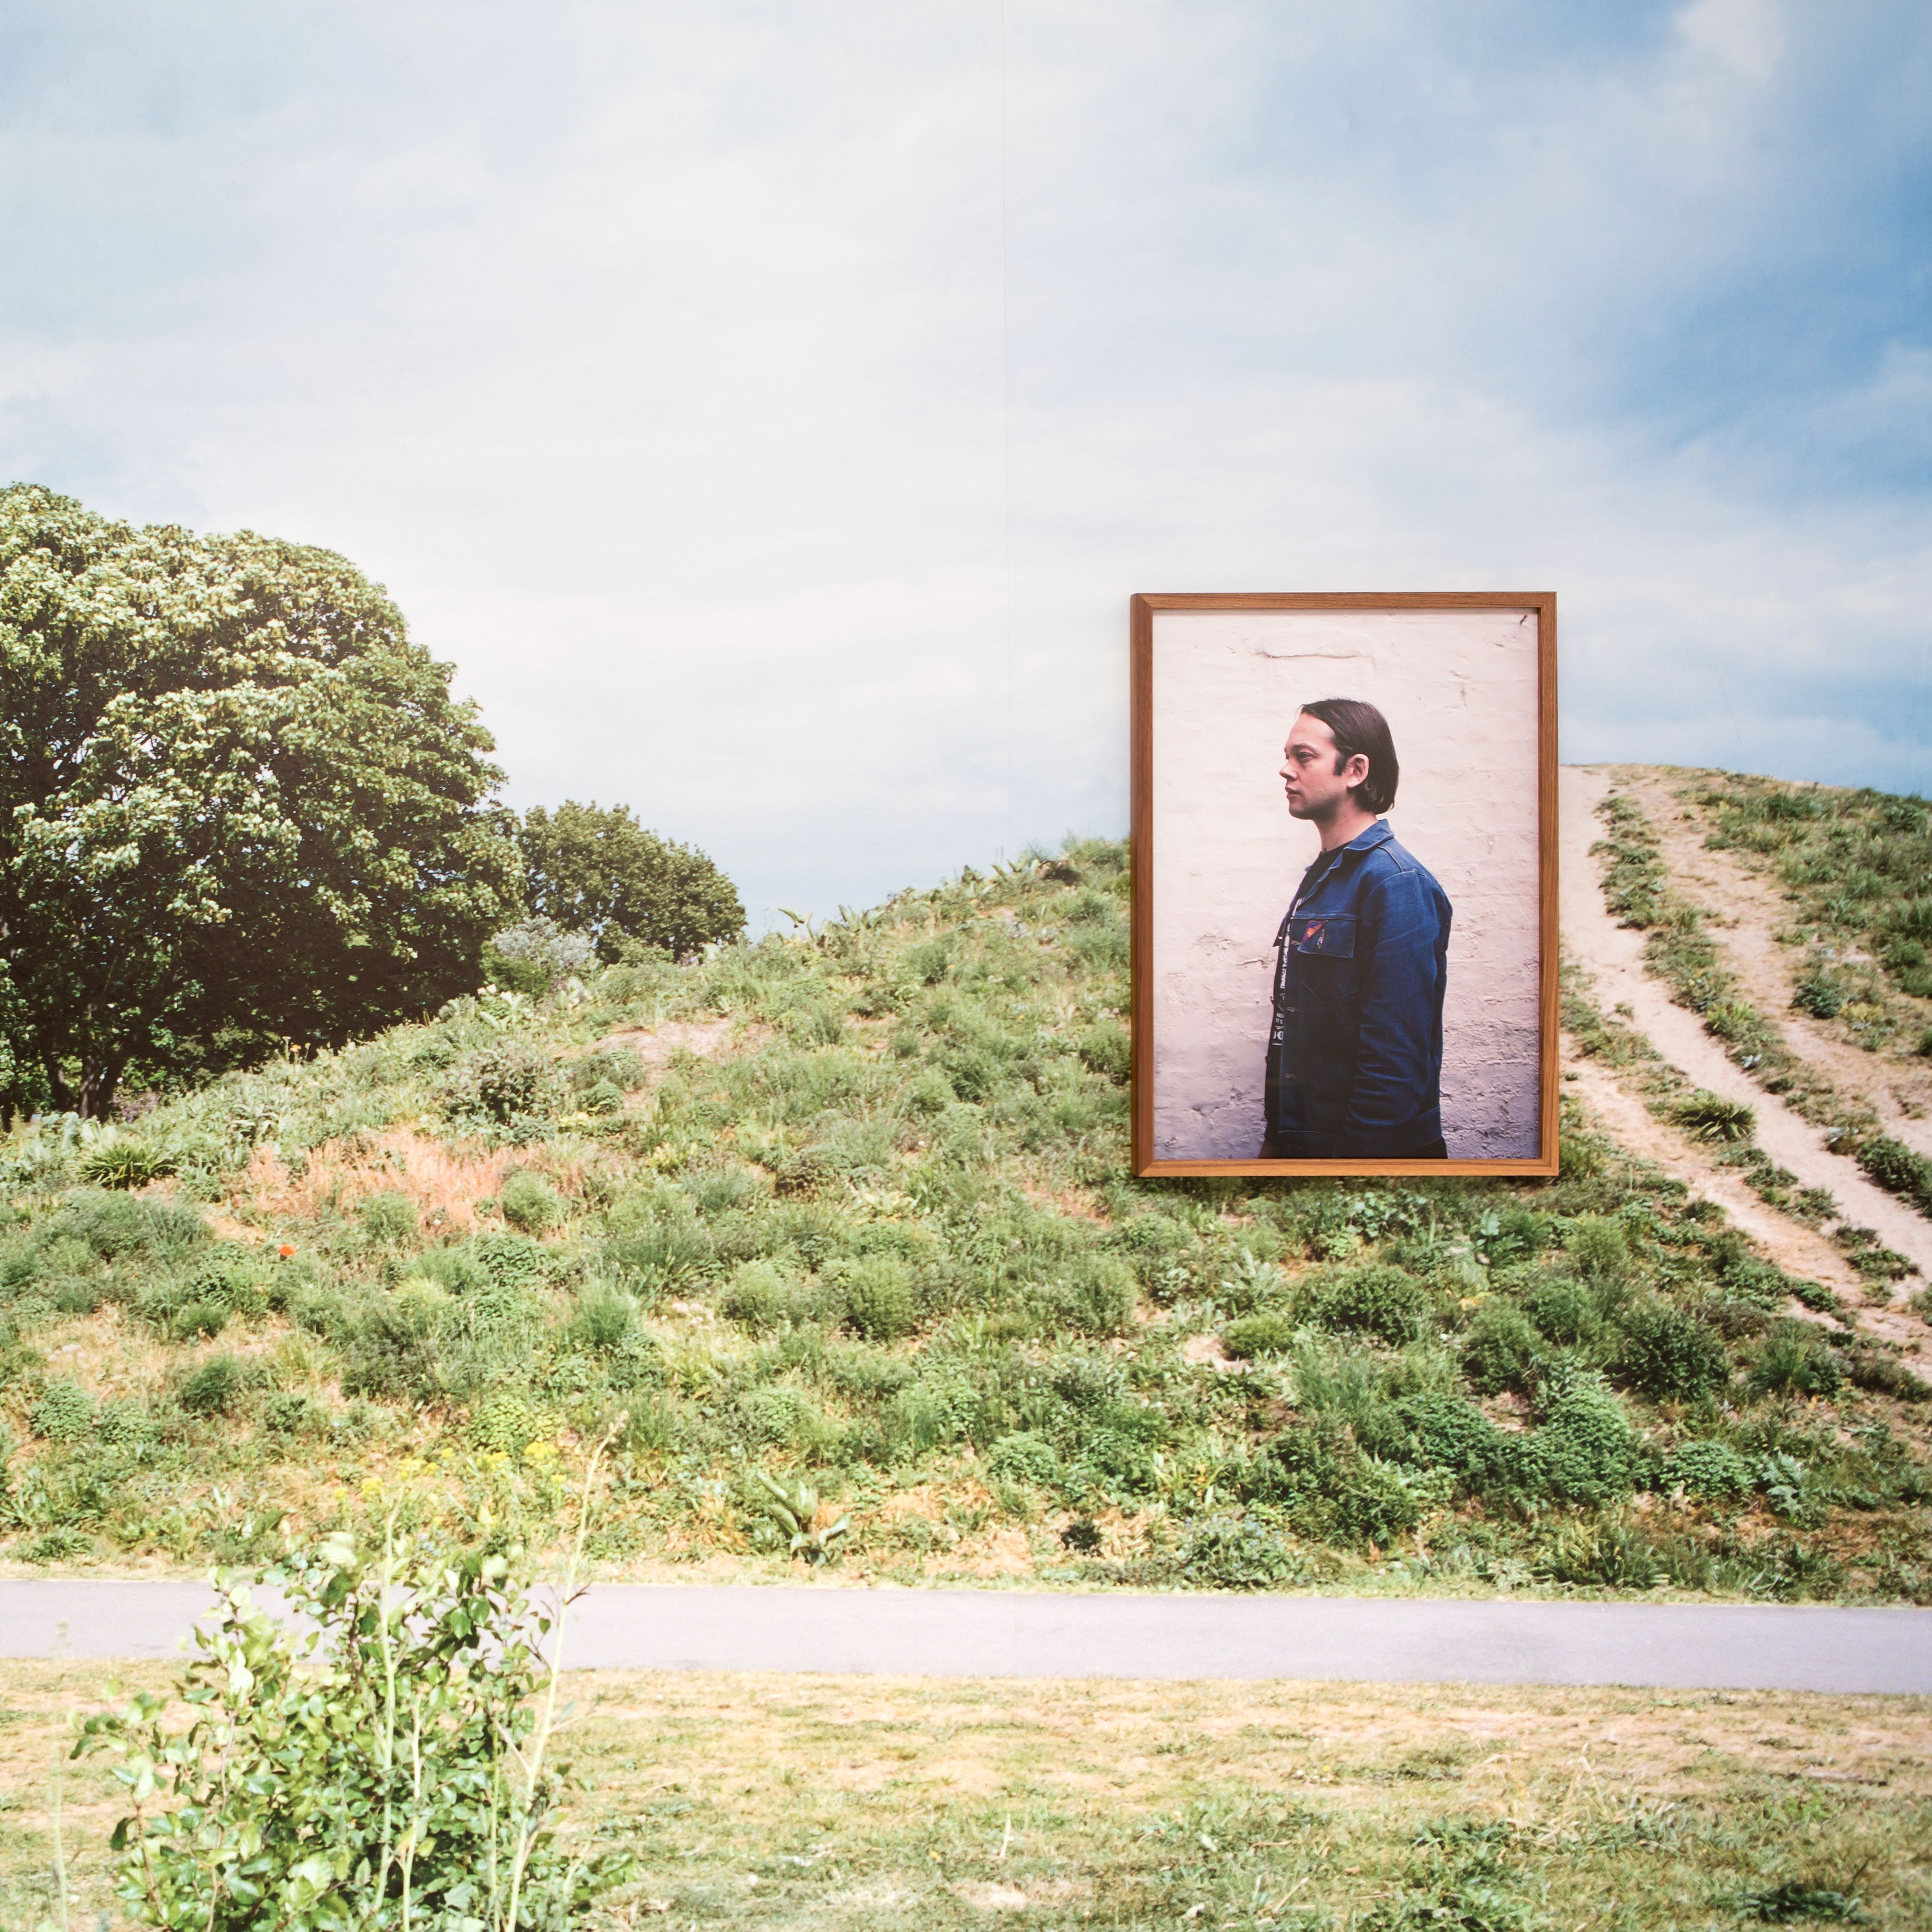 Green space with a large photography installation of a man.